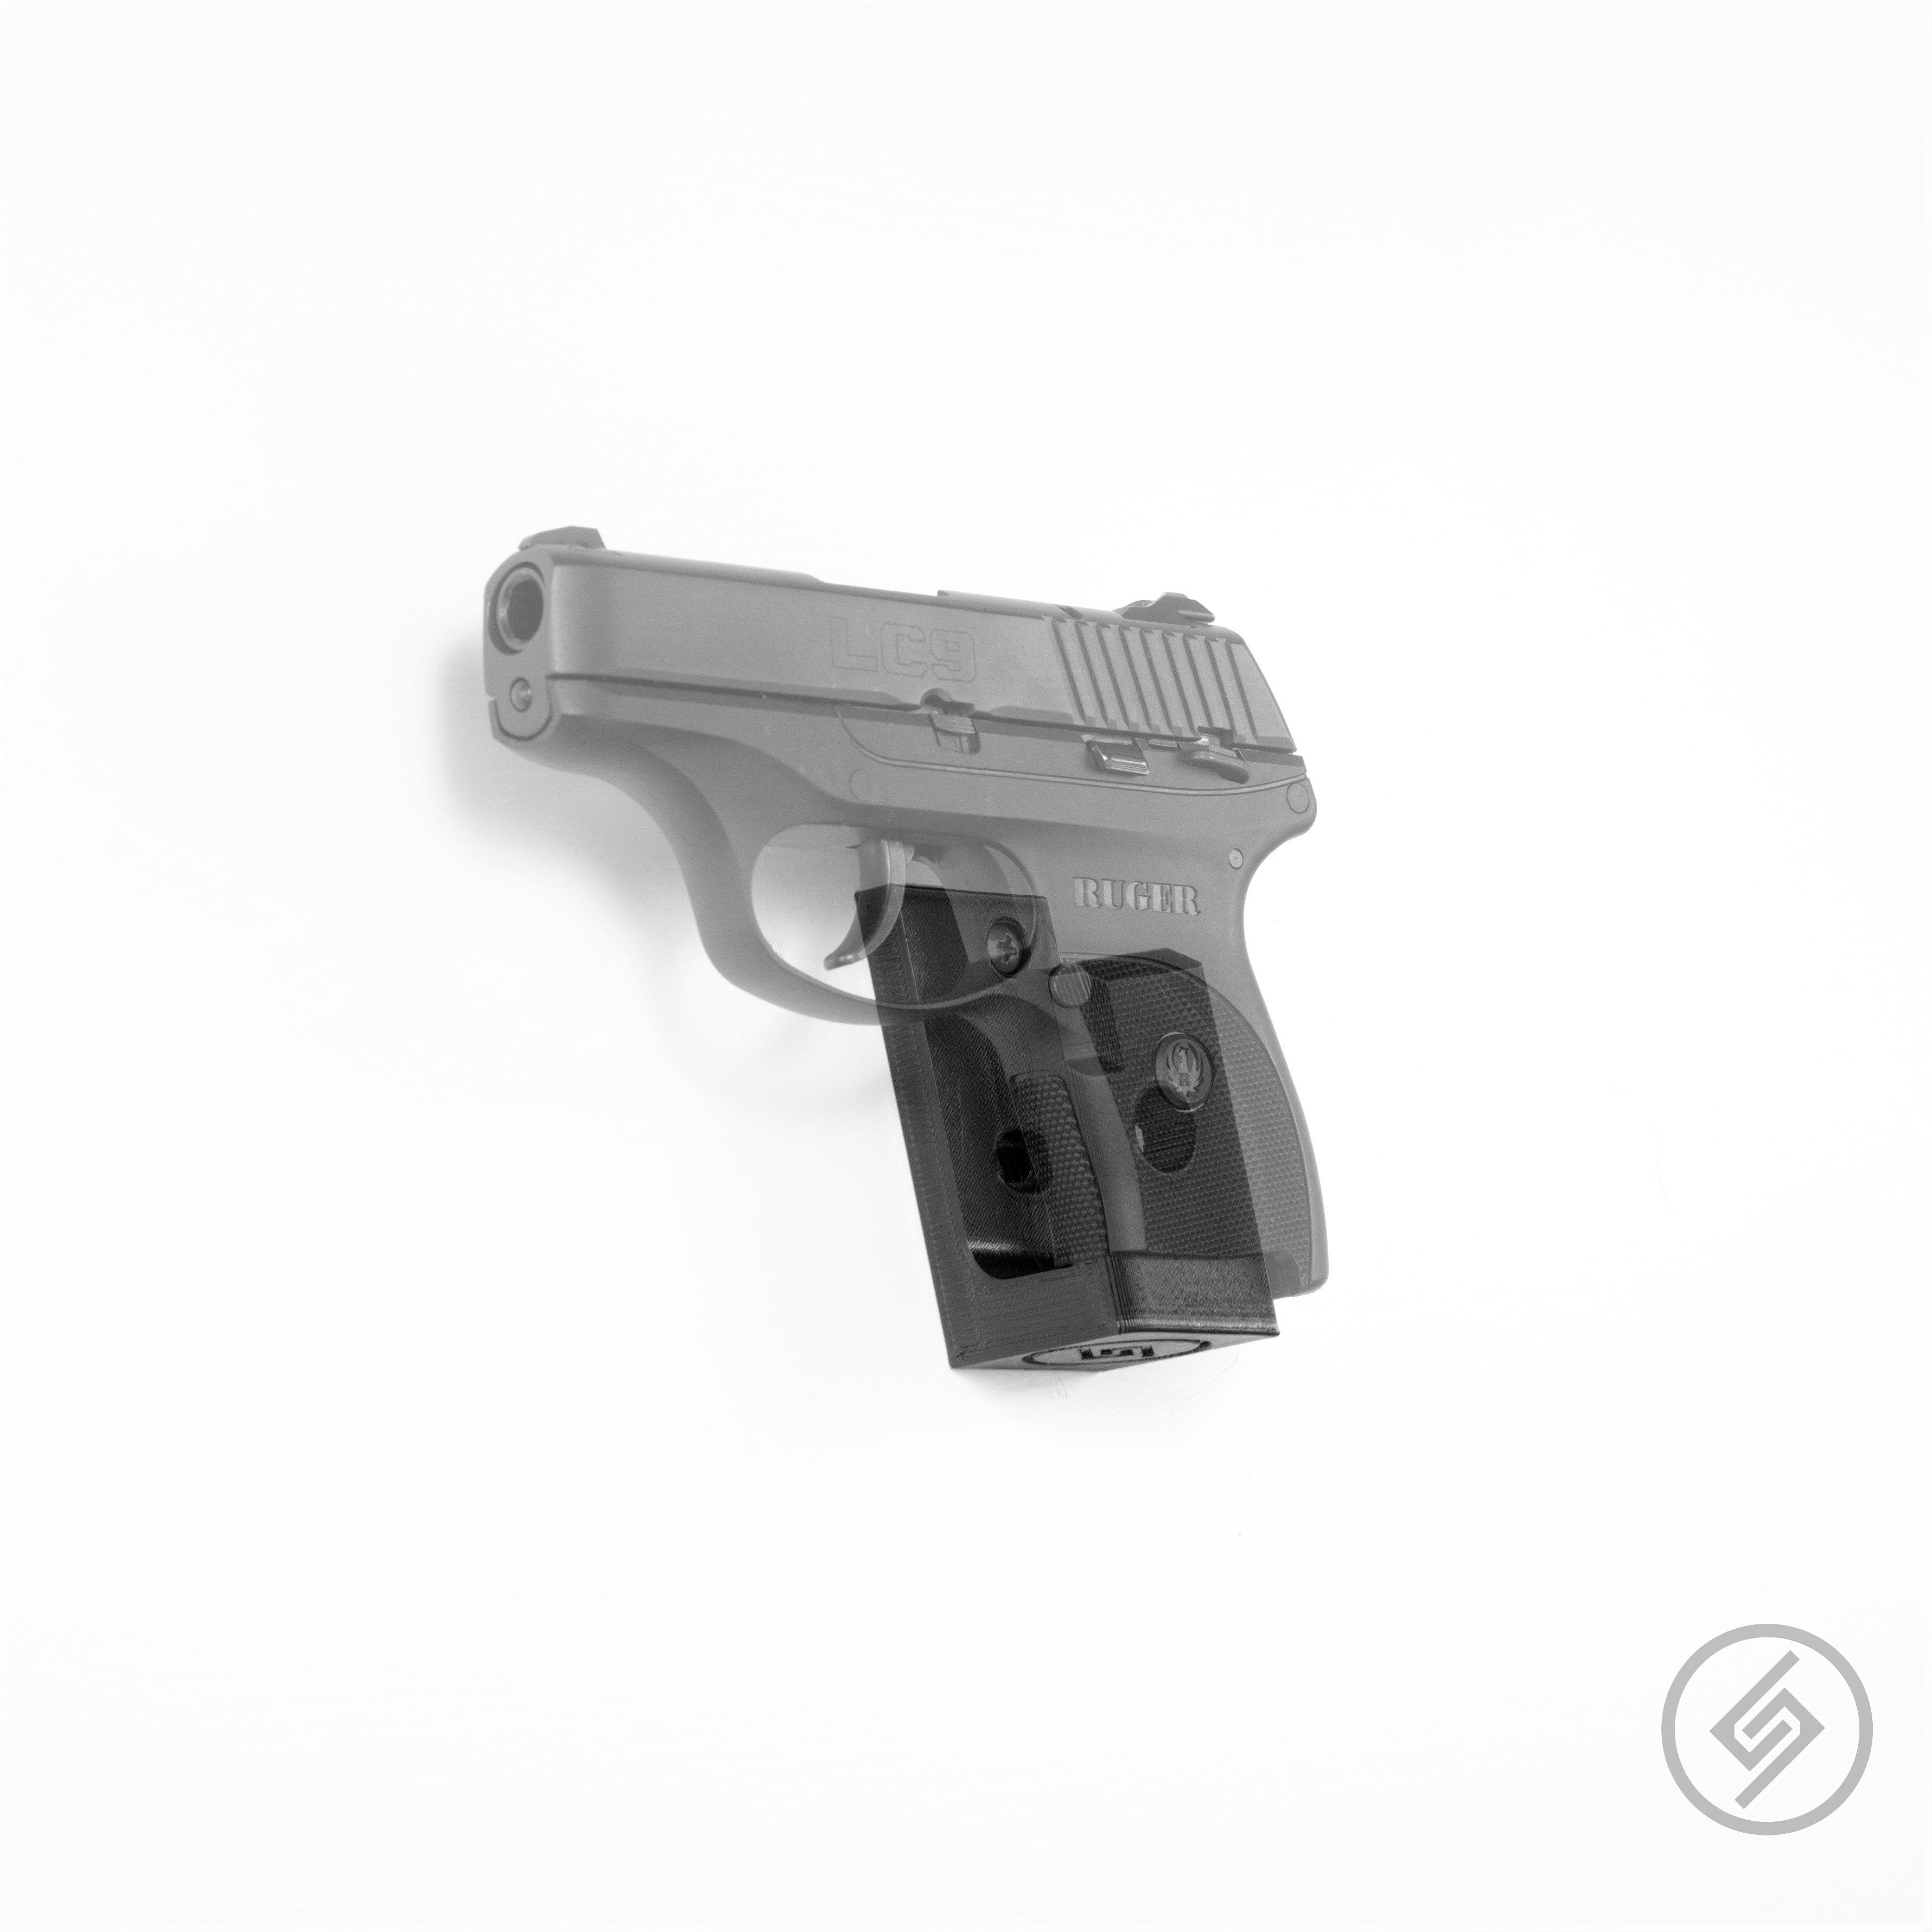 Mount for LC9 Pistol, Transparent, Left, Spartan Mounts, Display Photo